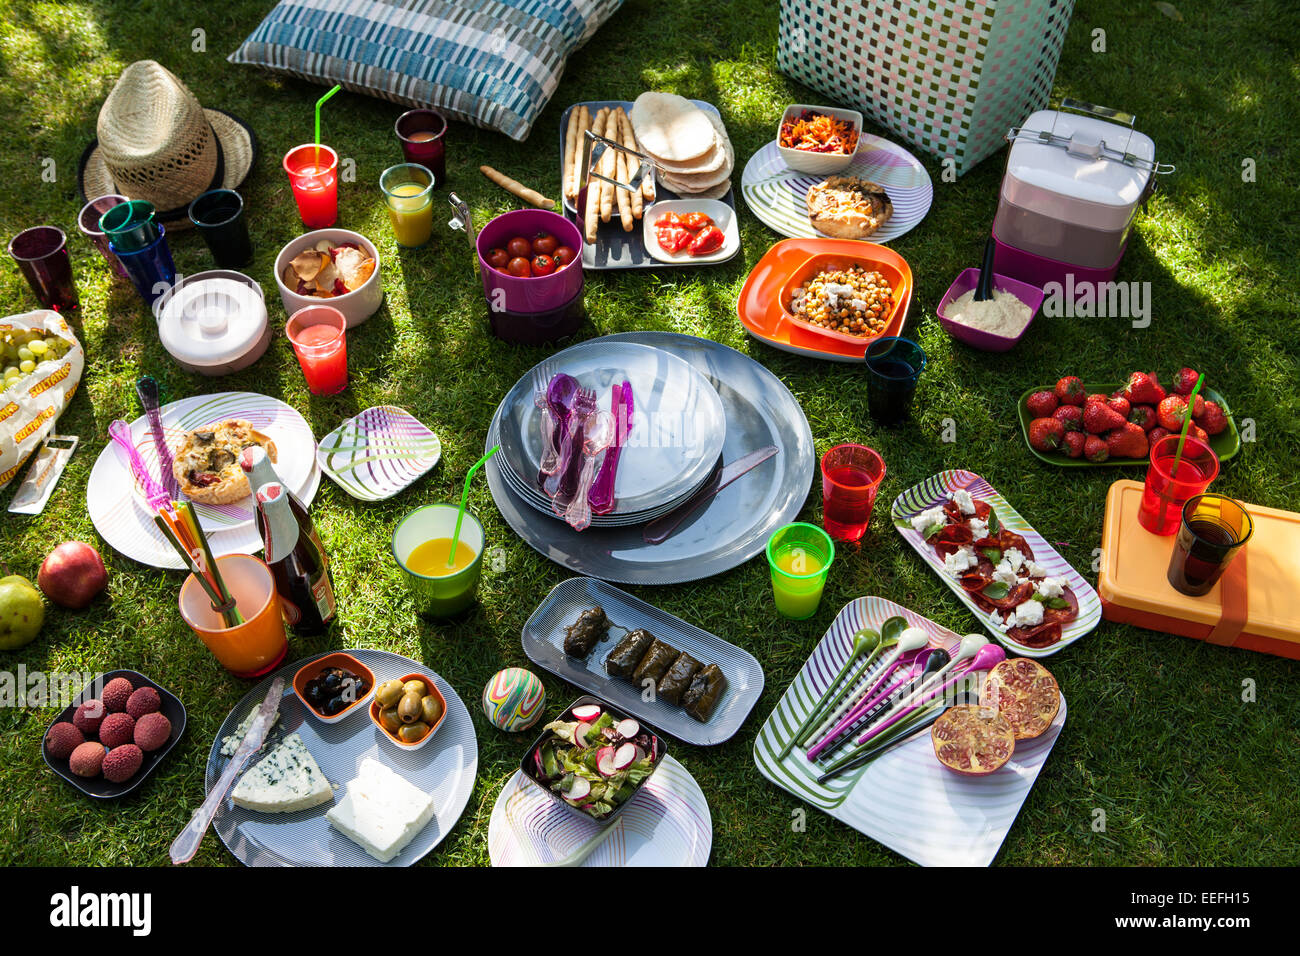 Outdoor picnic with plastic Habitat plates and cutlery. - Stock Image